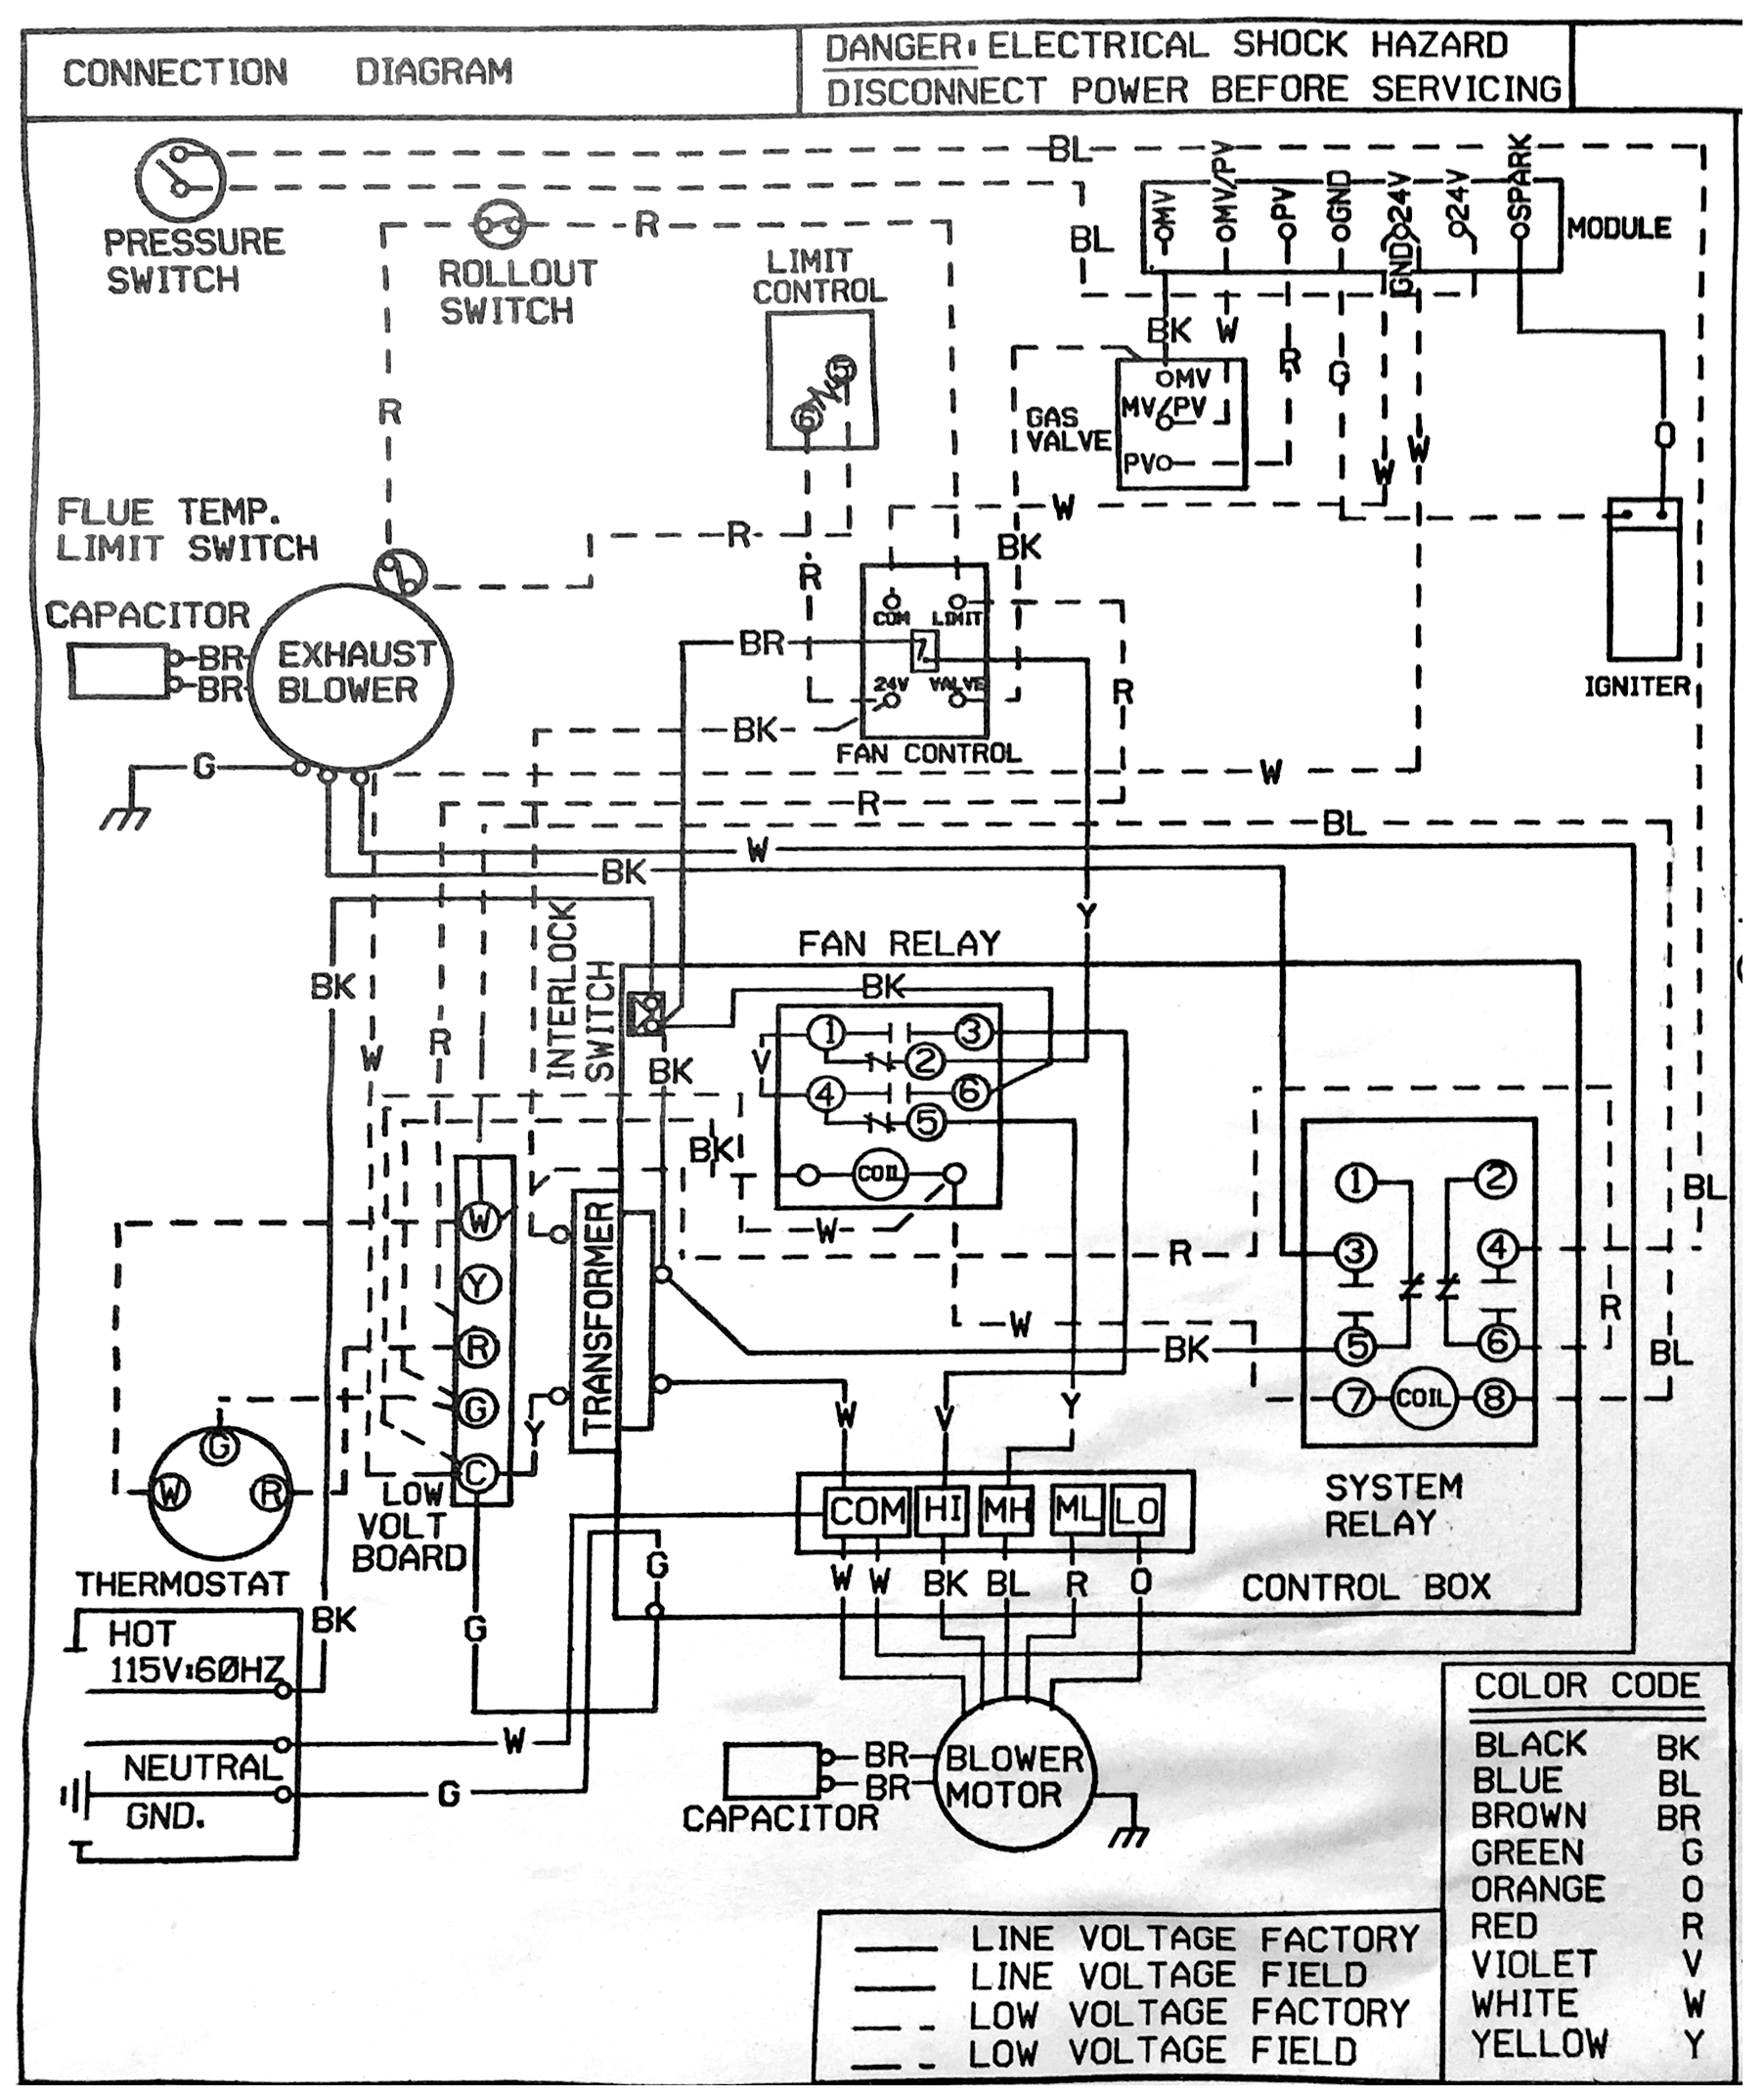 Tempstar Wiring Diagram Improve Wiring Diagram u2022 Heat Pump Installation Diagram  Tempstar Thermostat Wiring Diagram